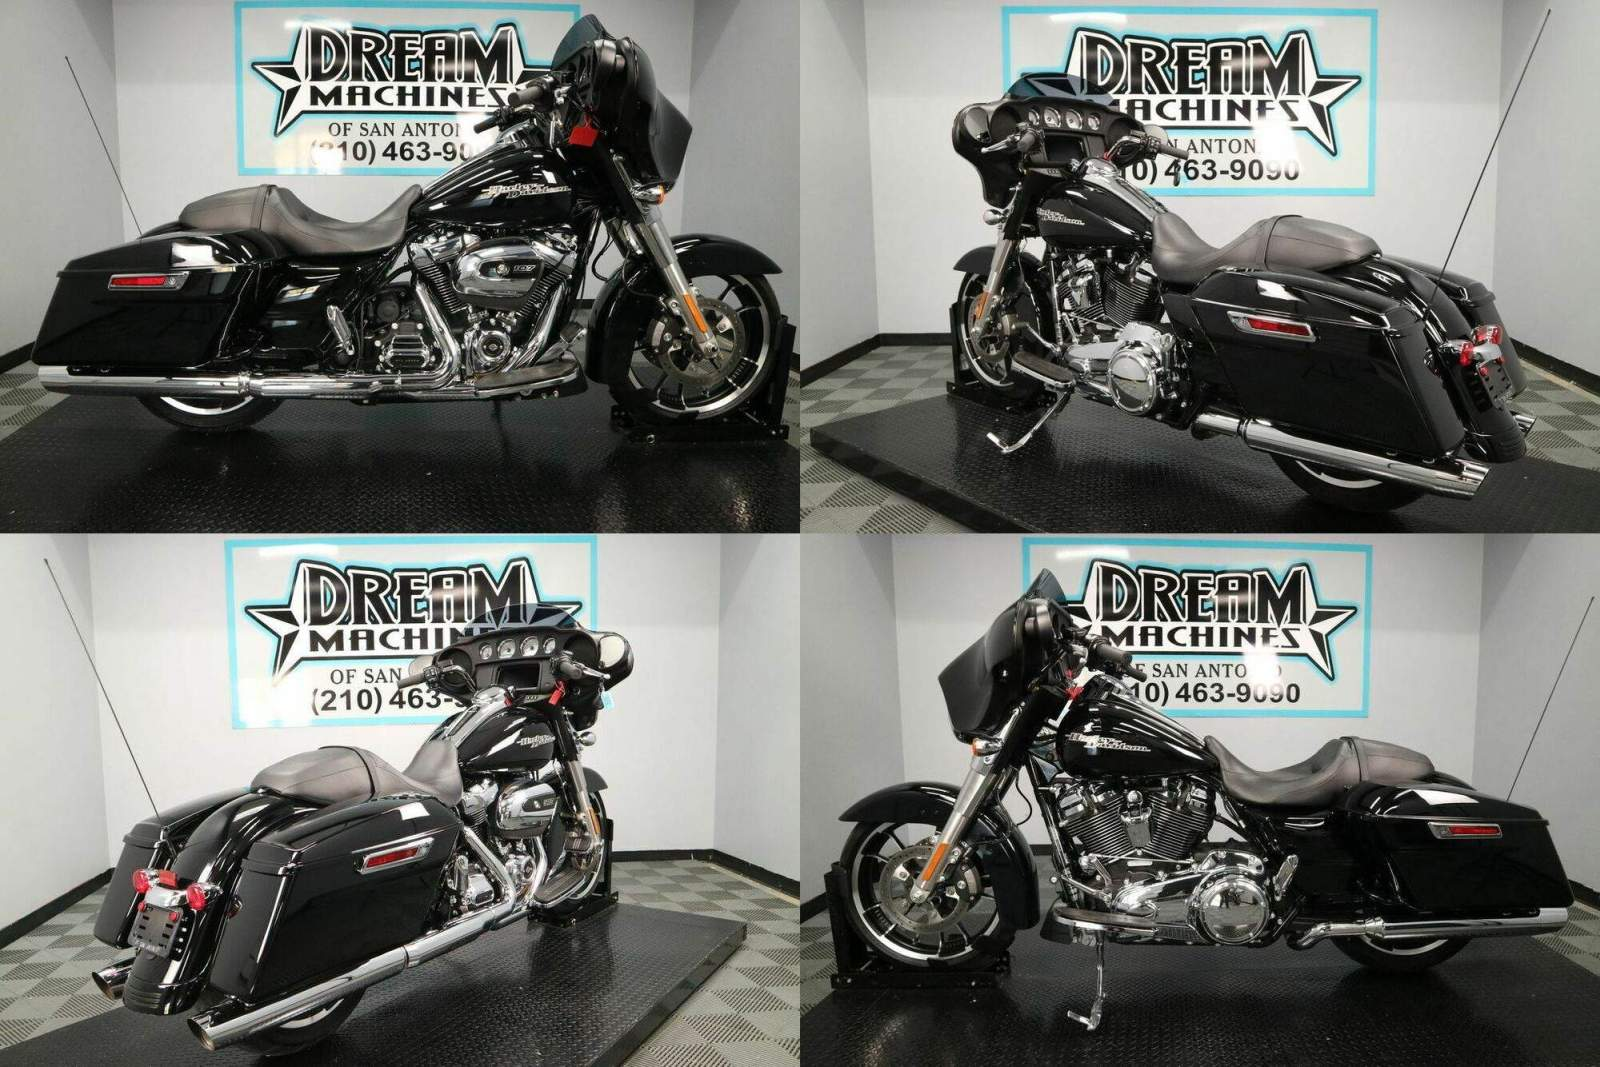 2020 Harley-Davidson FLHX - Street Glide Black used for sale craigslist